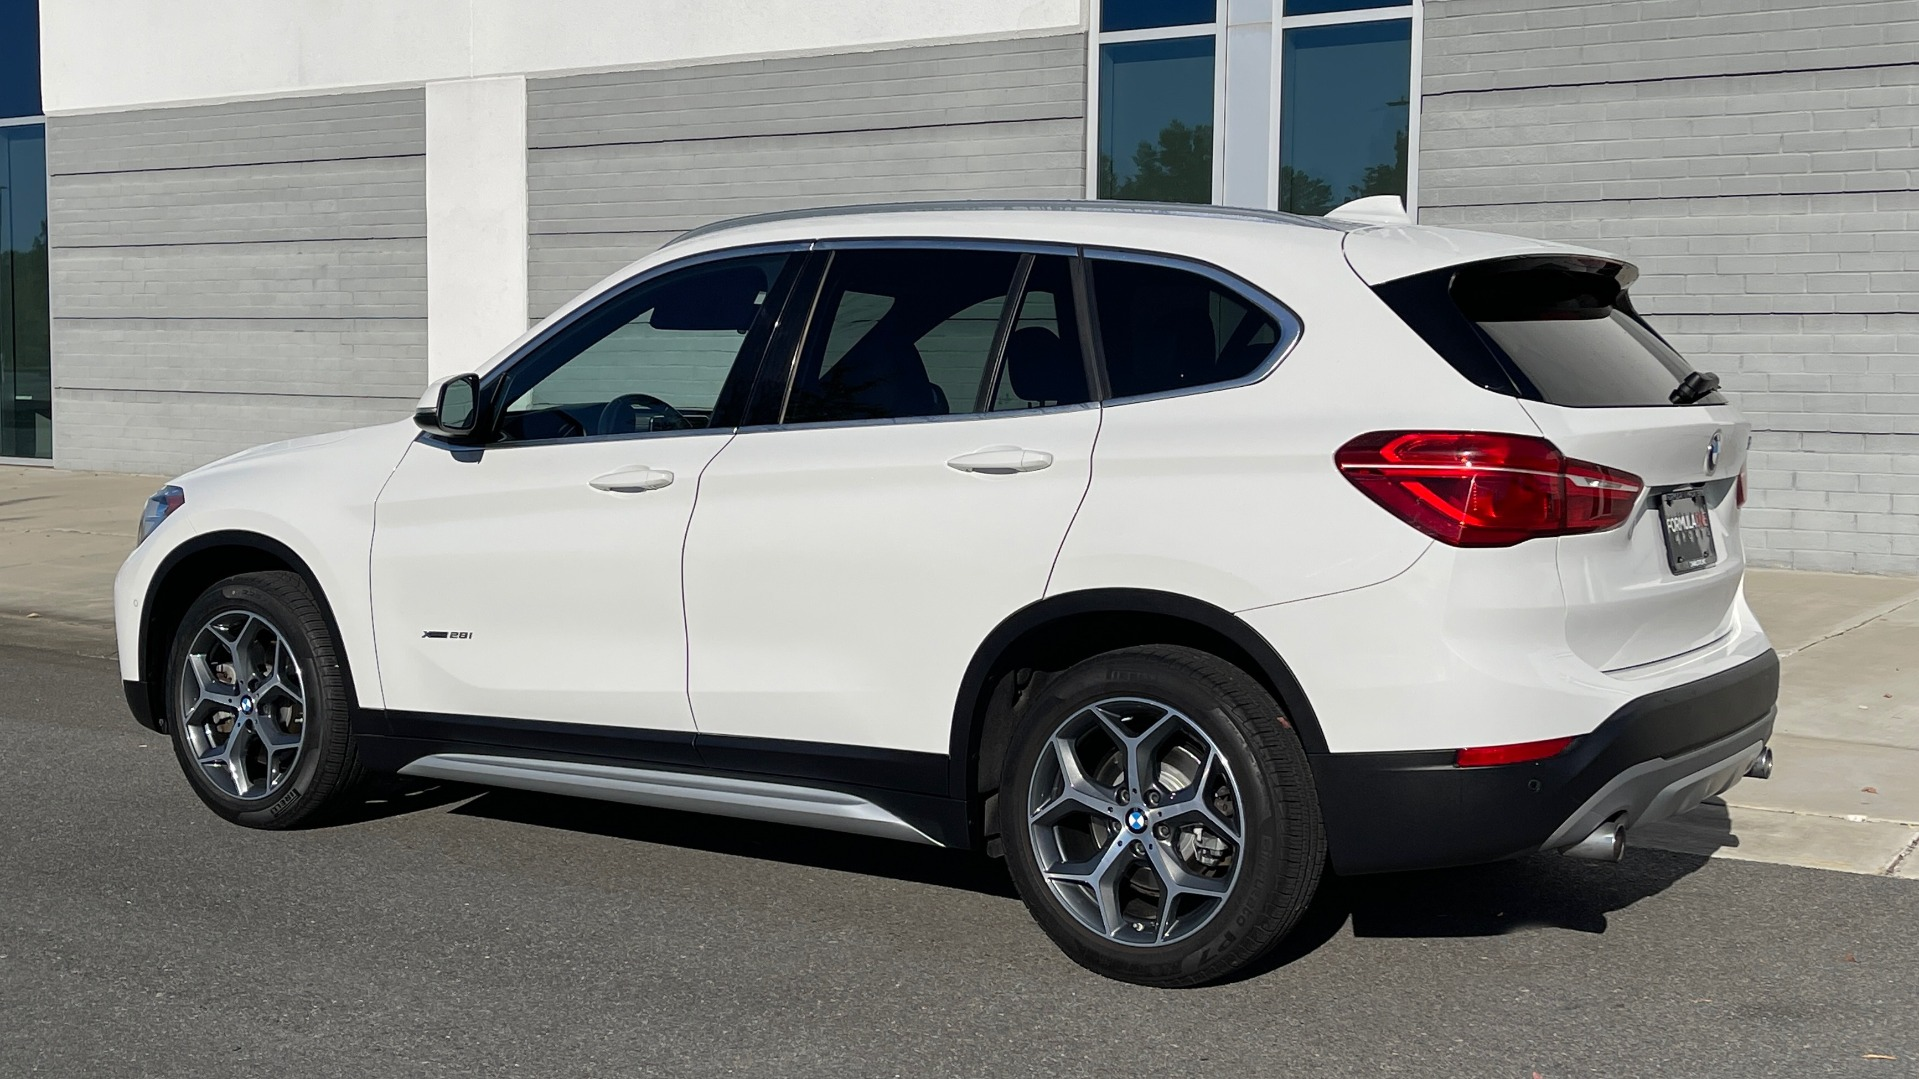 Used 2018 BMW X1 XDRIVE28I / CONV PKG / PANO-ROOF / PARK ASST / REARVIEW for sale $31,995 at Formula Imports in Charlotte NC 28227 4